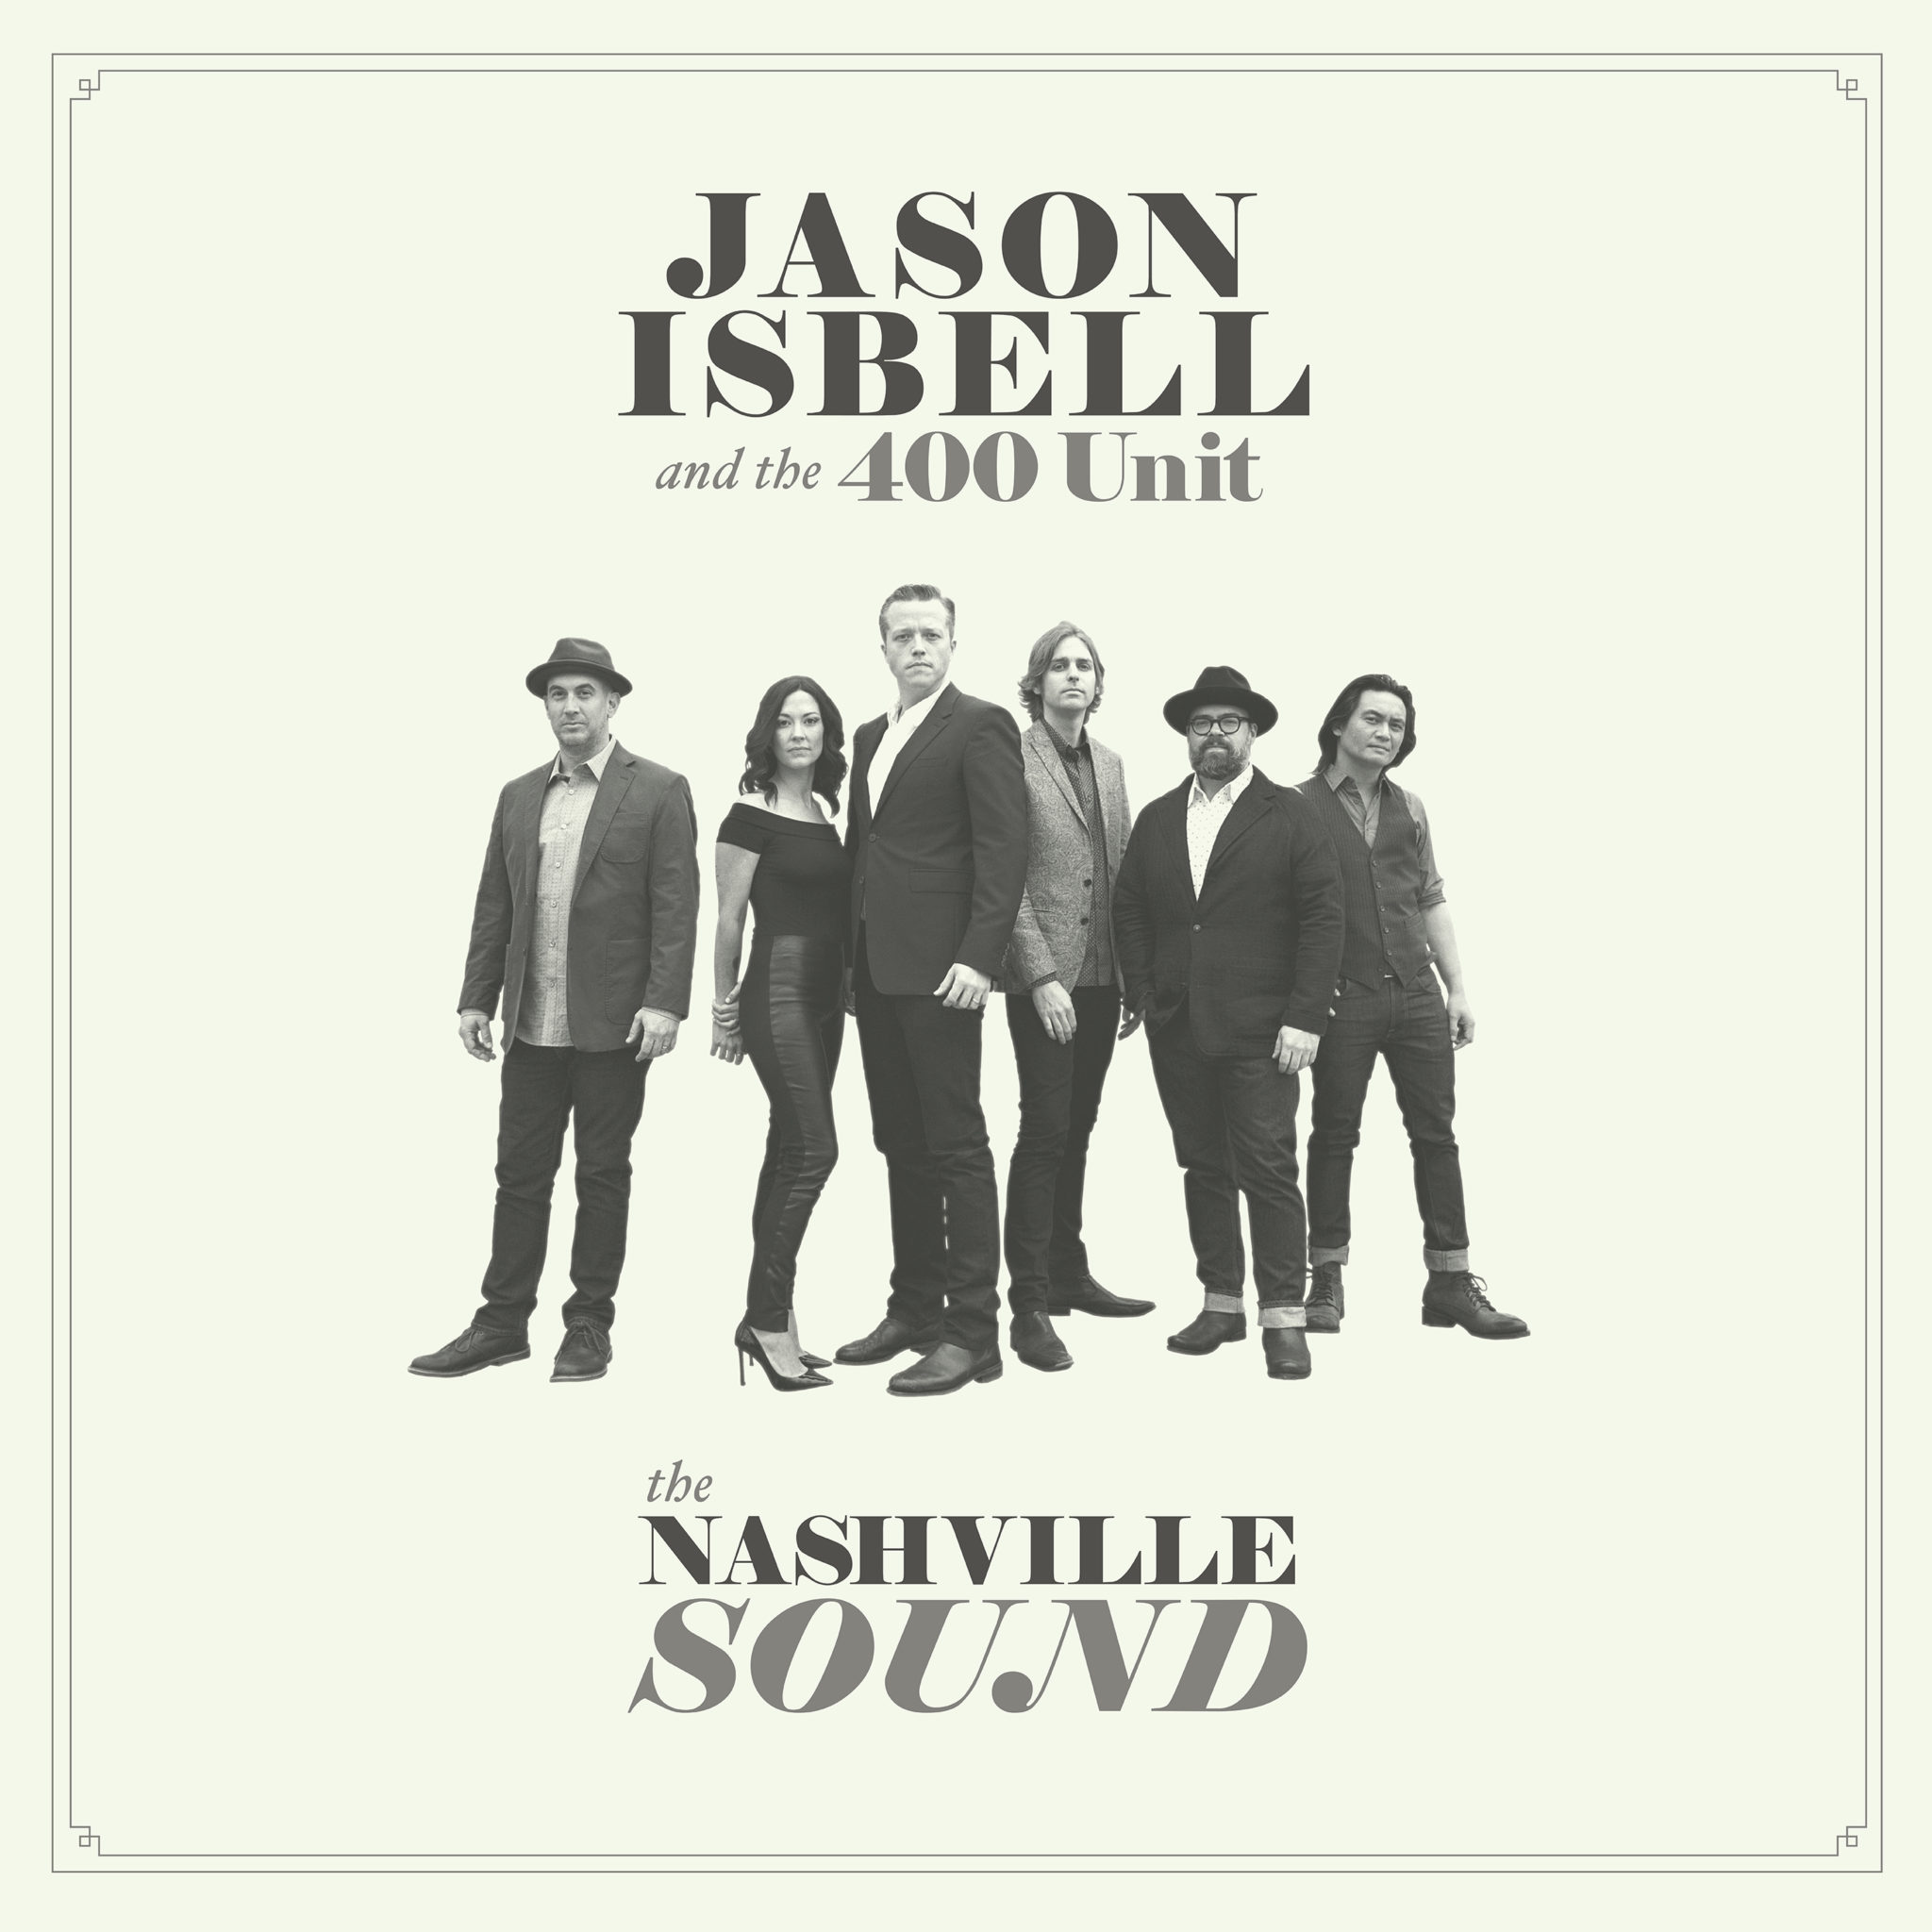 The Nashville Sound - Jason Isbell